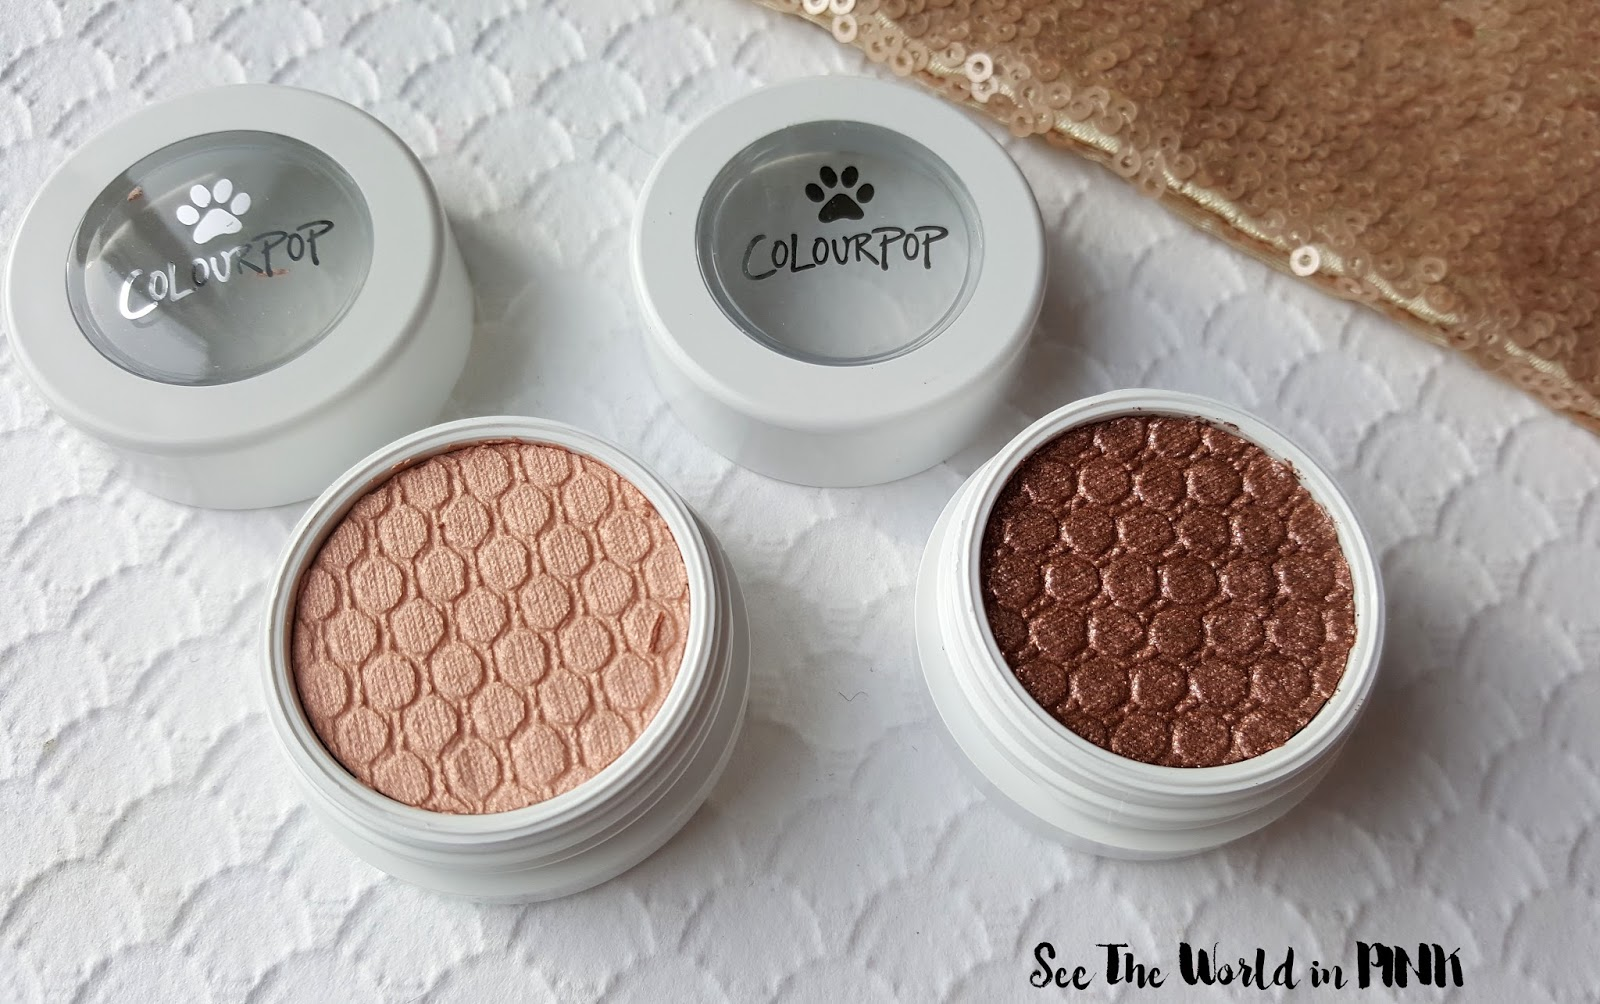 ColourPop Cosmetics - Last Call for Cat Nap and Puppy Love Super Shock Eyeshadows!